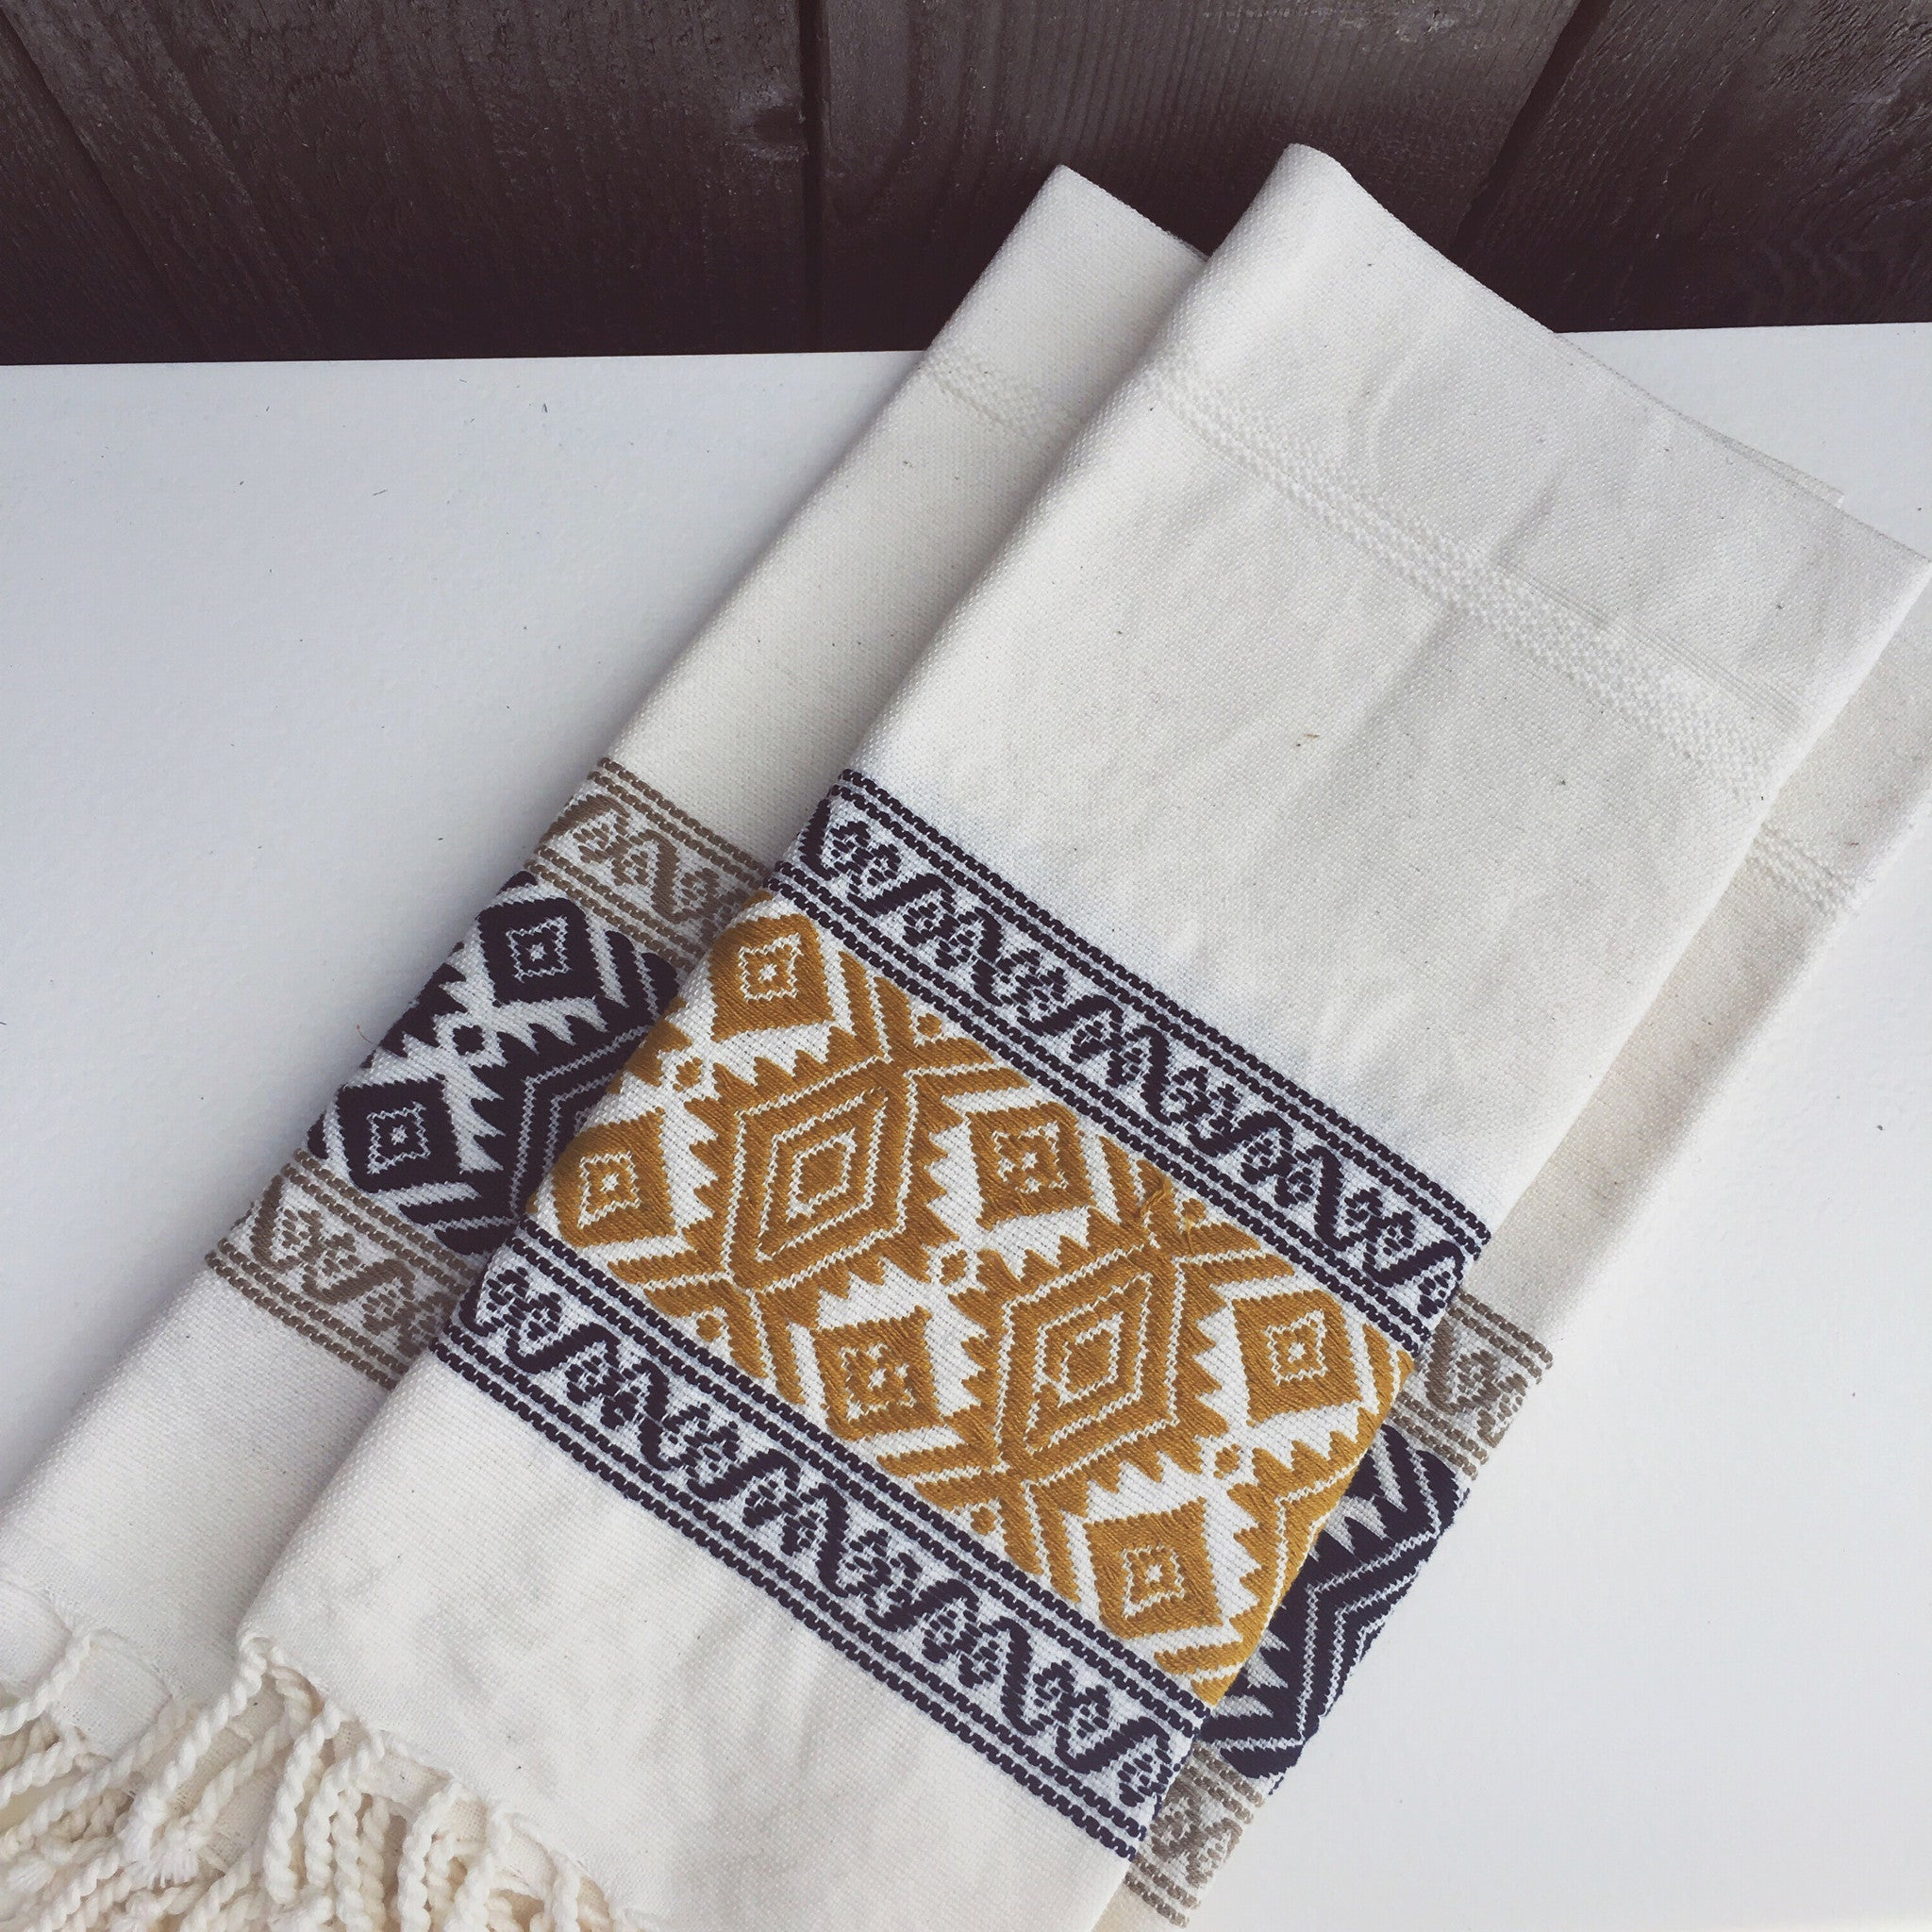 Handwoven Kitchen Towel From Guatemala